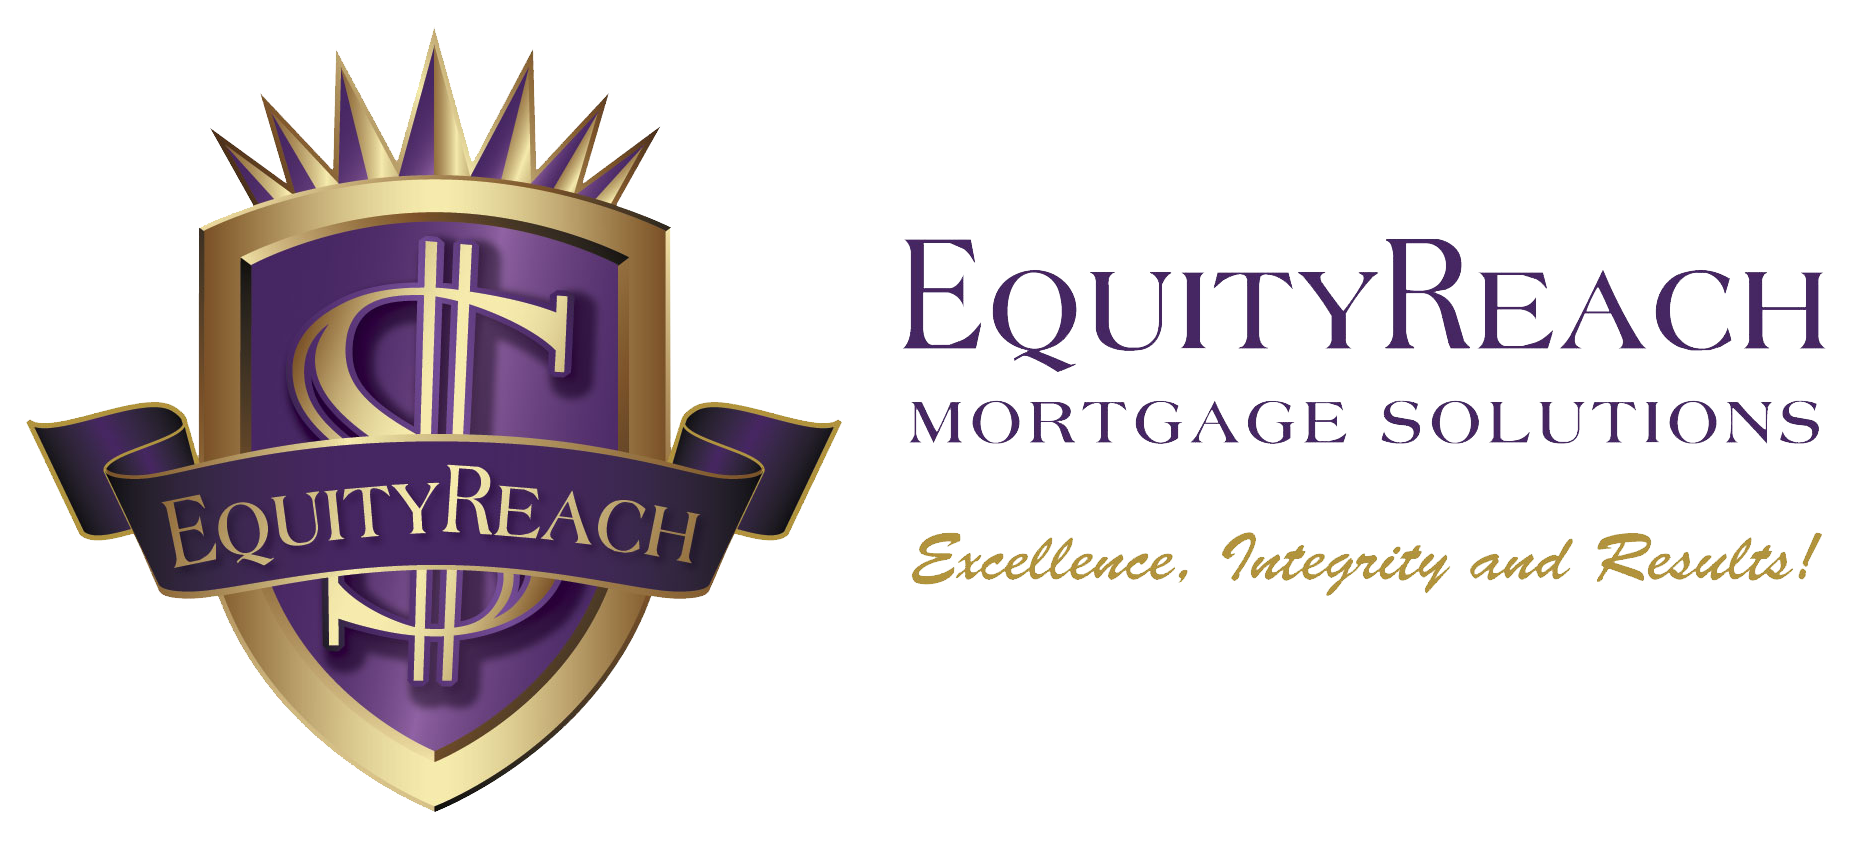 EquityReach Mortgage Solutions Logo